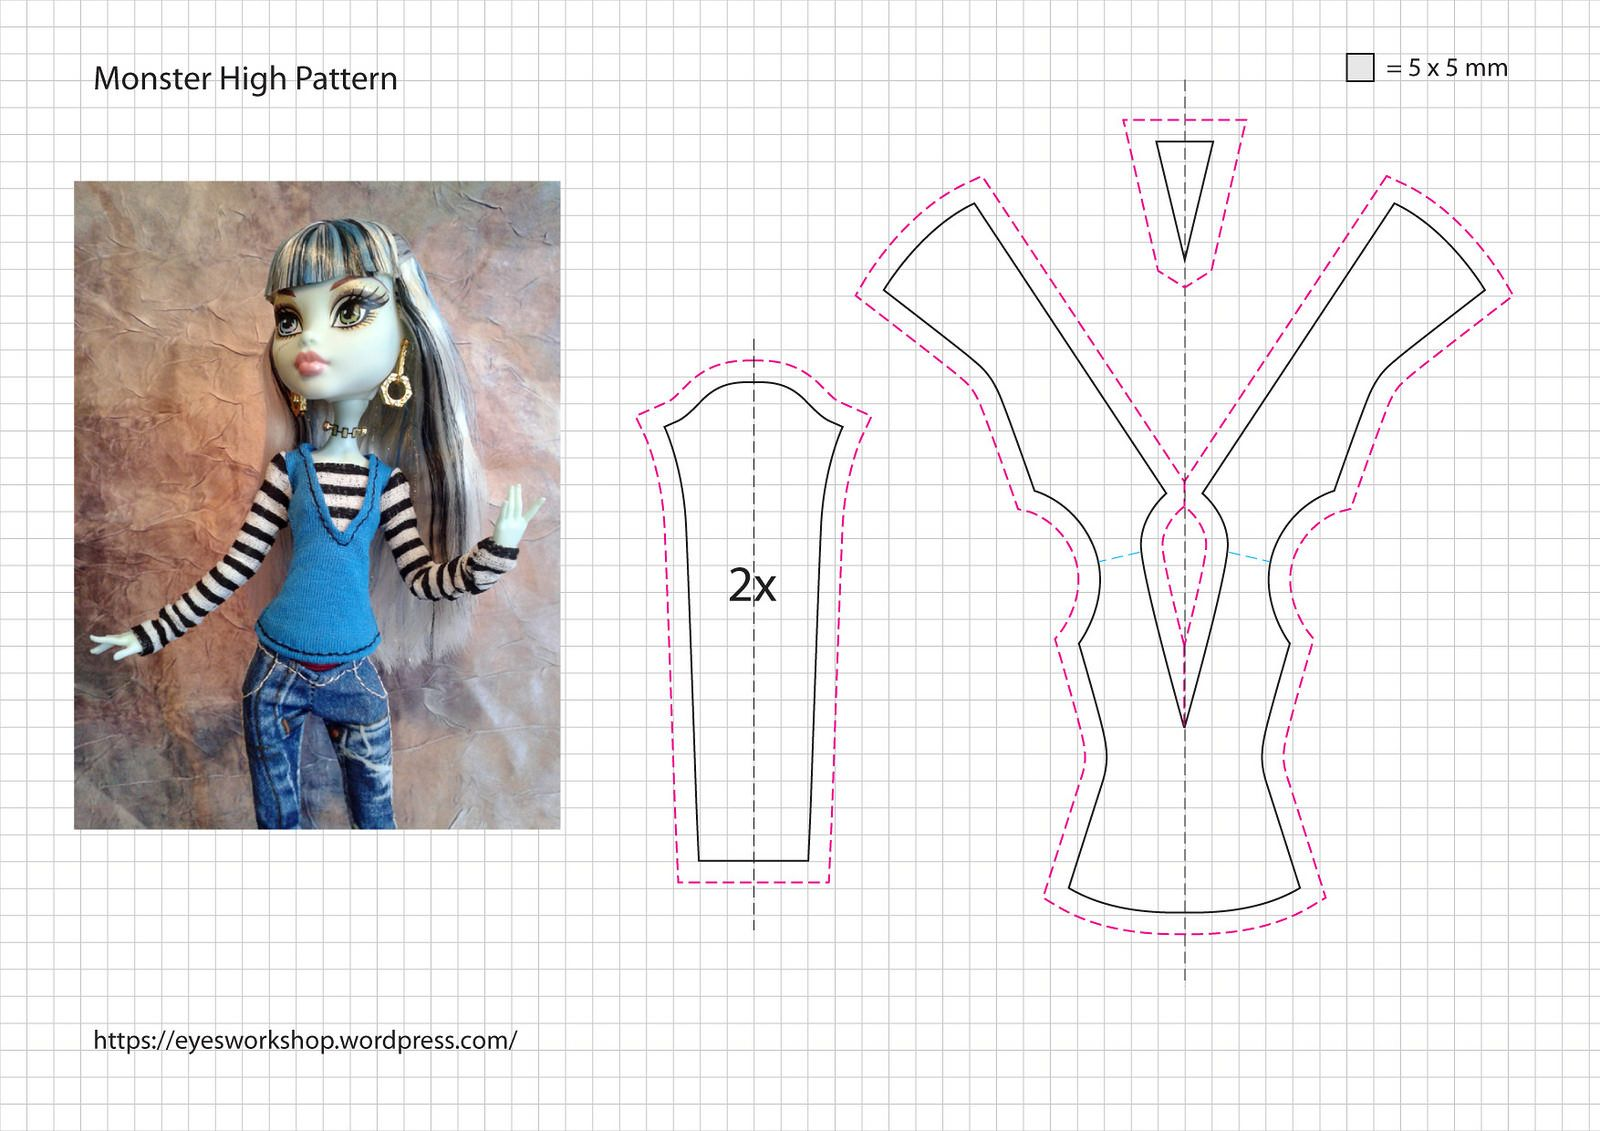 Eye's tailor shop - More Monster High Fashion